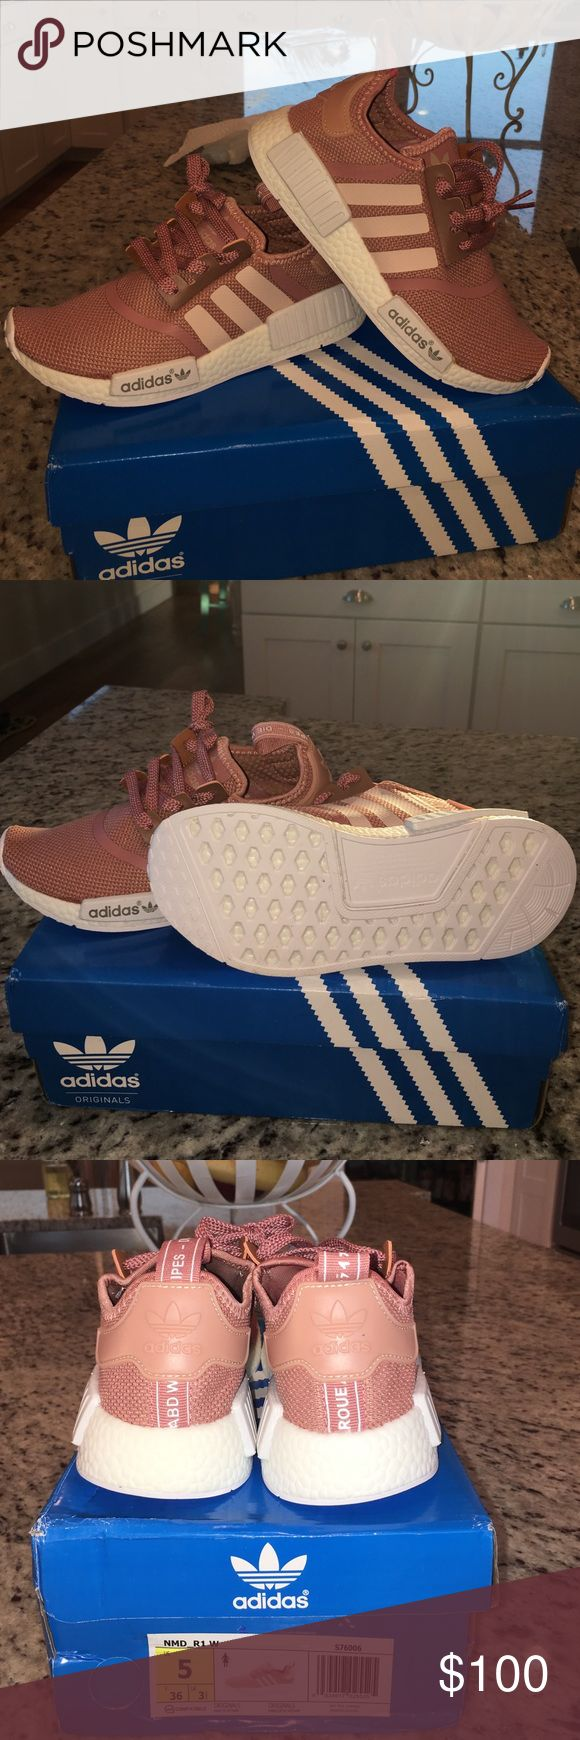 Adidas Boost Adidas light pink Boost running shoes. Adidas Shoes Athletic Shoes